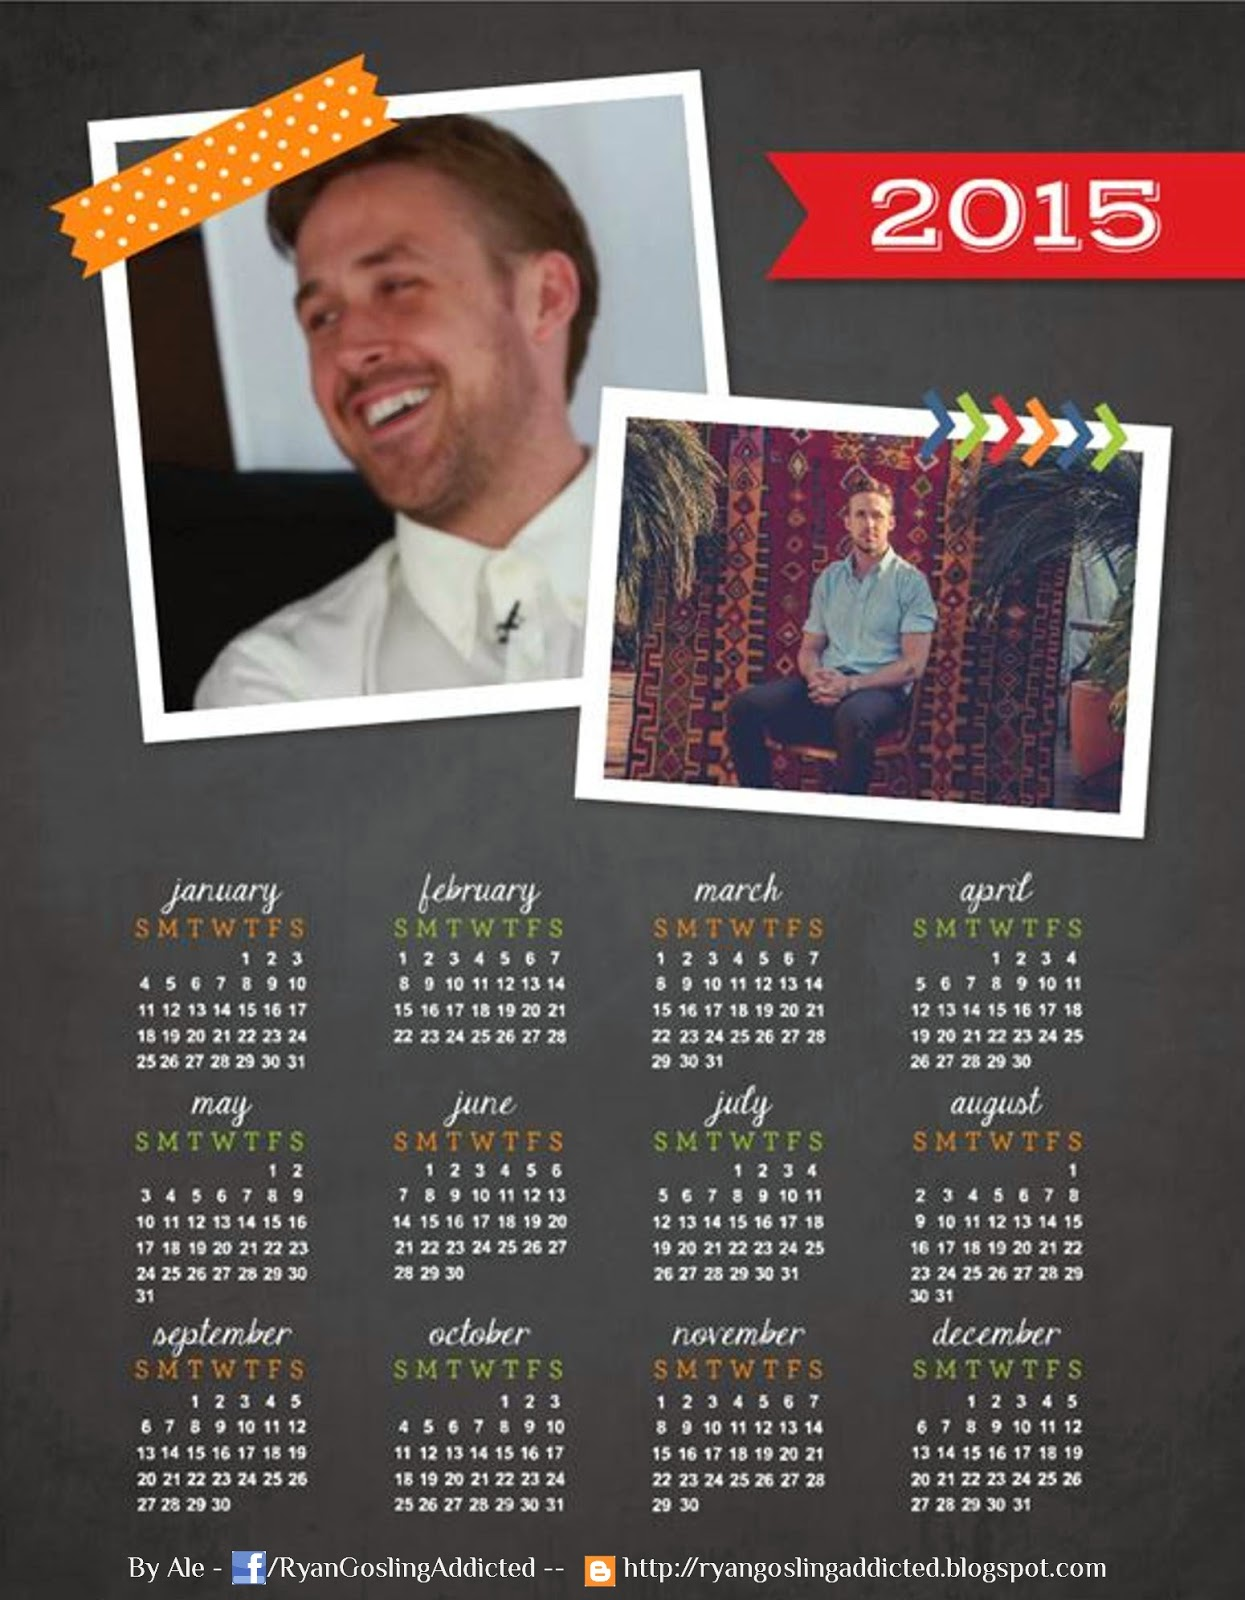 Ryan Gosling Addicted - Yearly Calendar